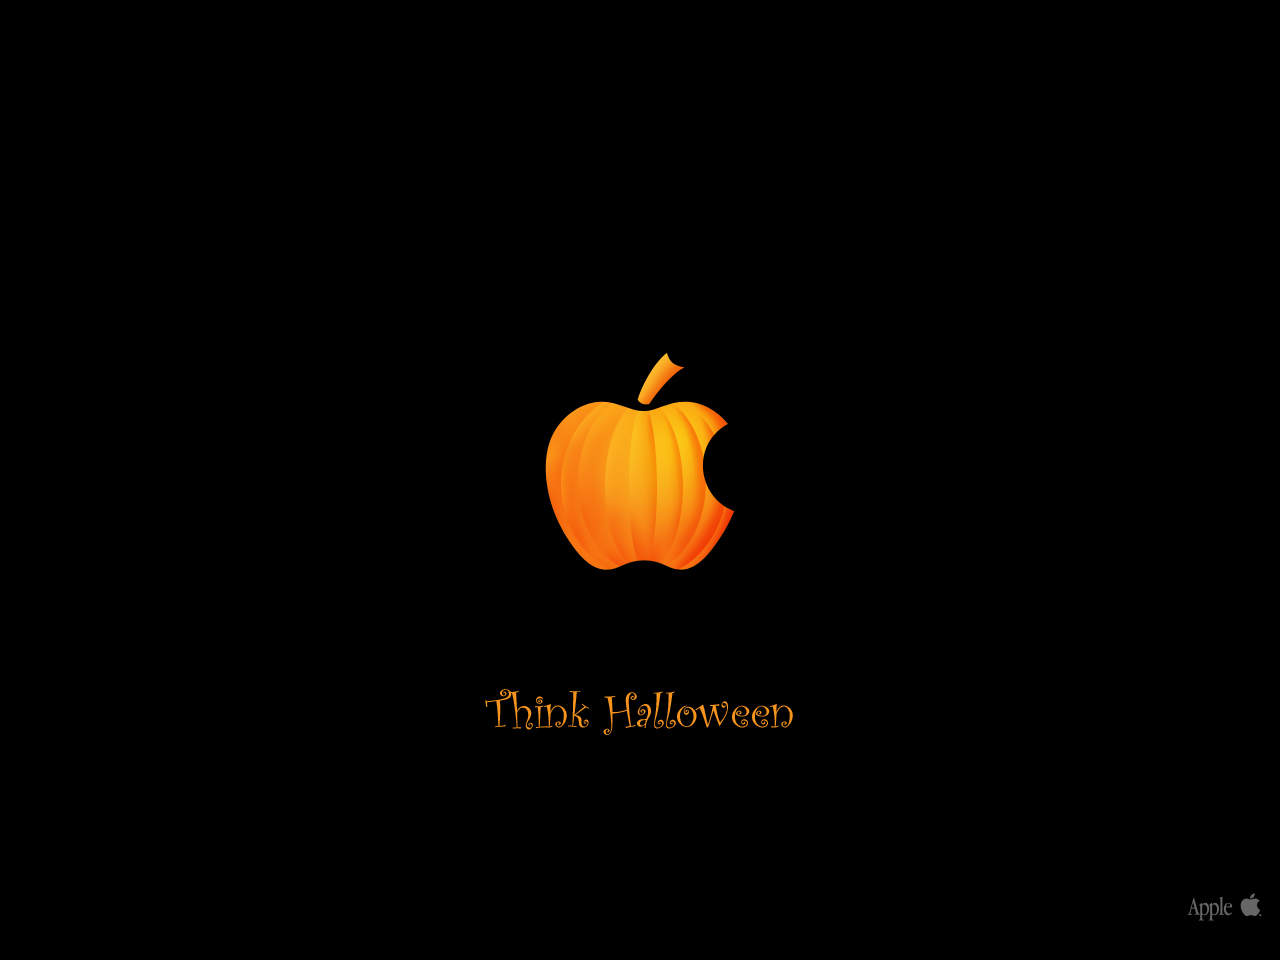 Cute Halloween Wallpaper Iphone Images amp Pictures   Becuo 1280x960